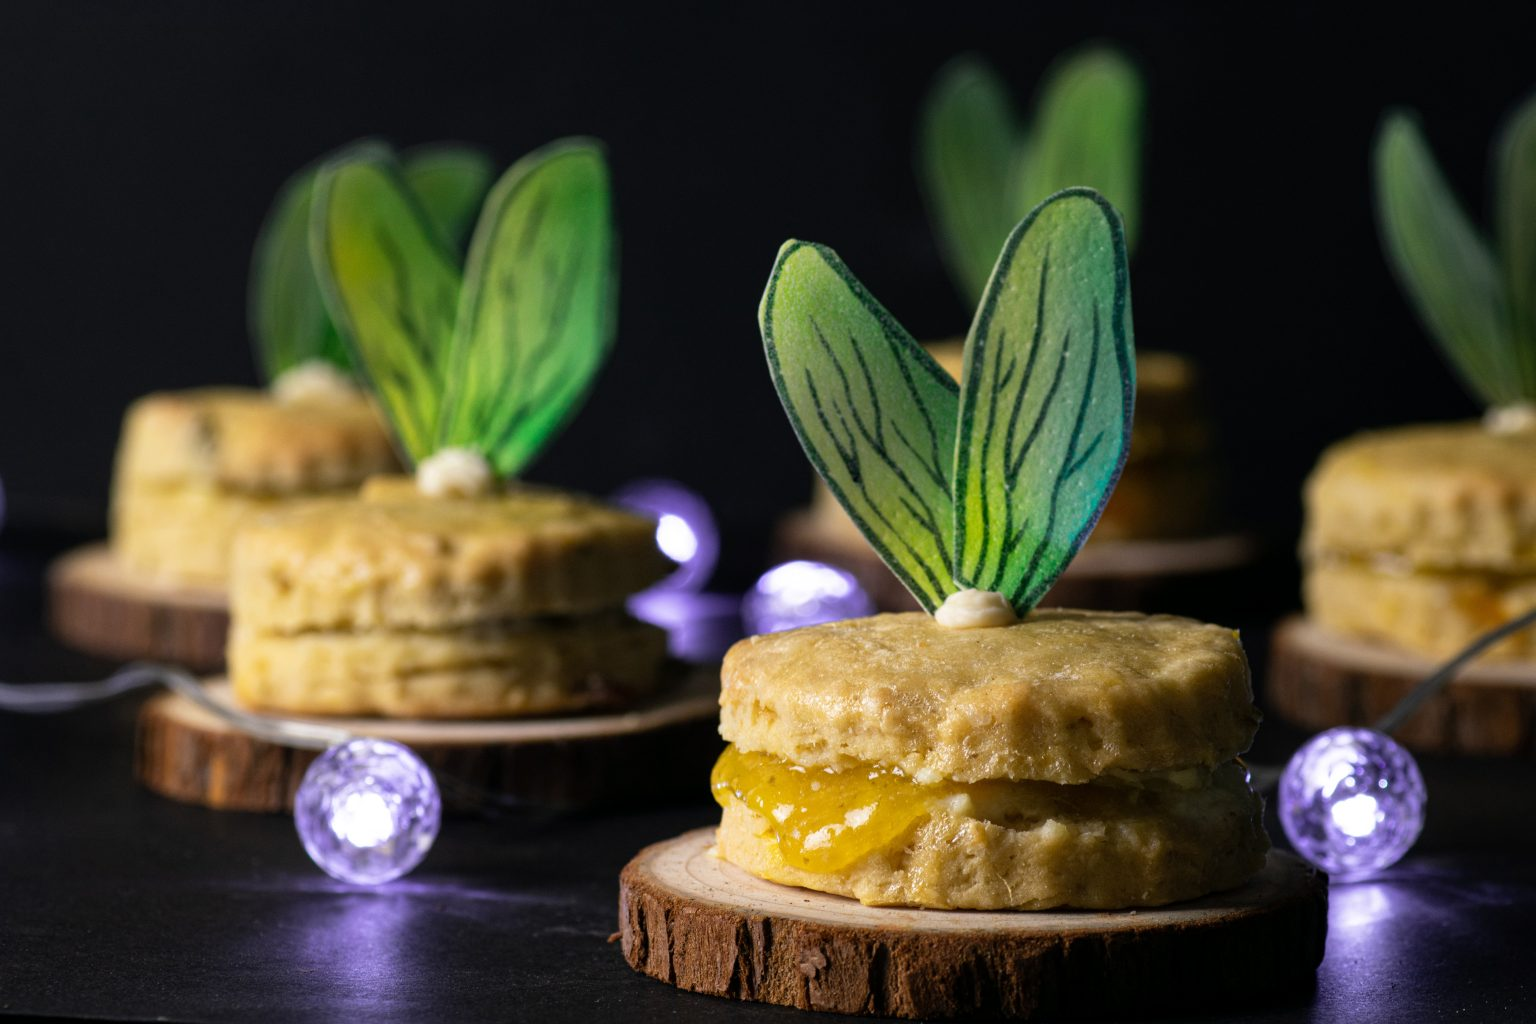 Firefly scones with mango and basil jam